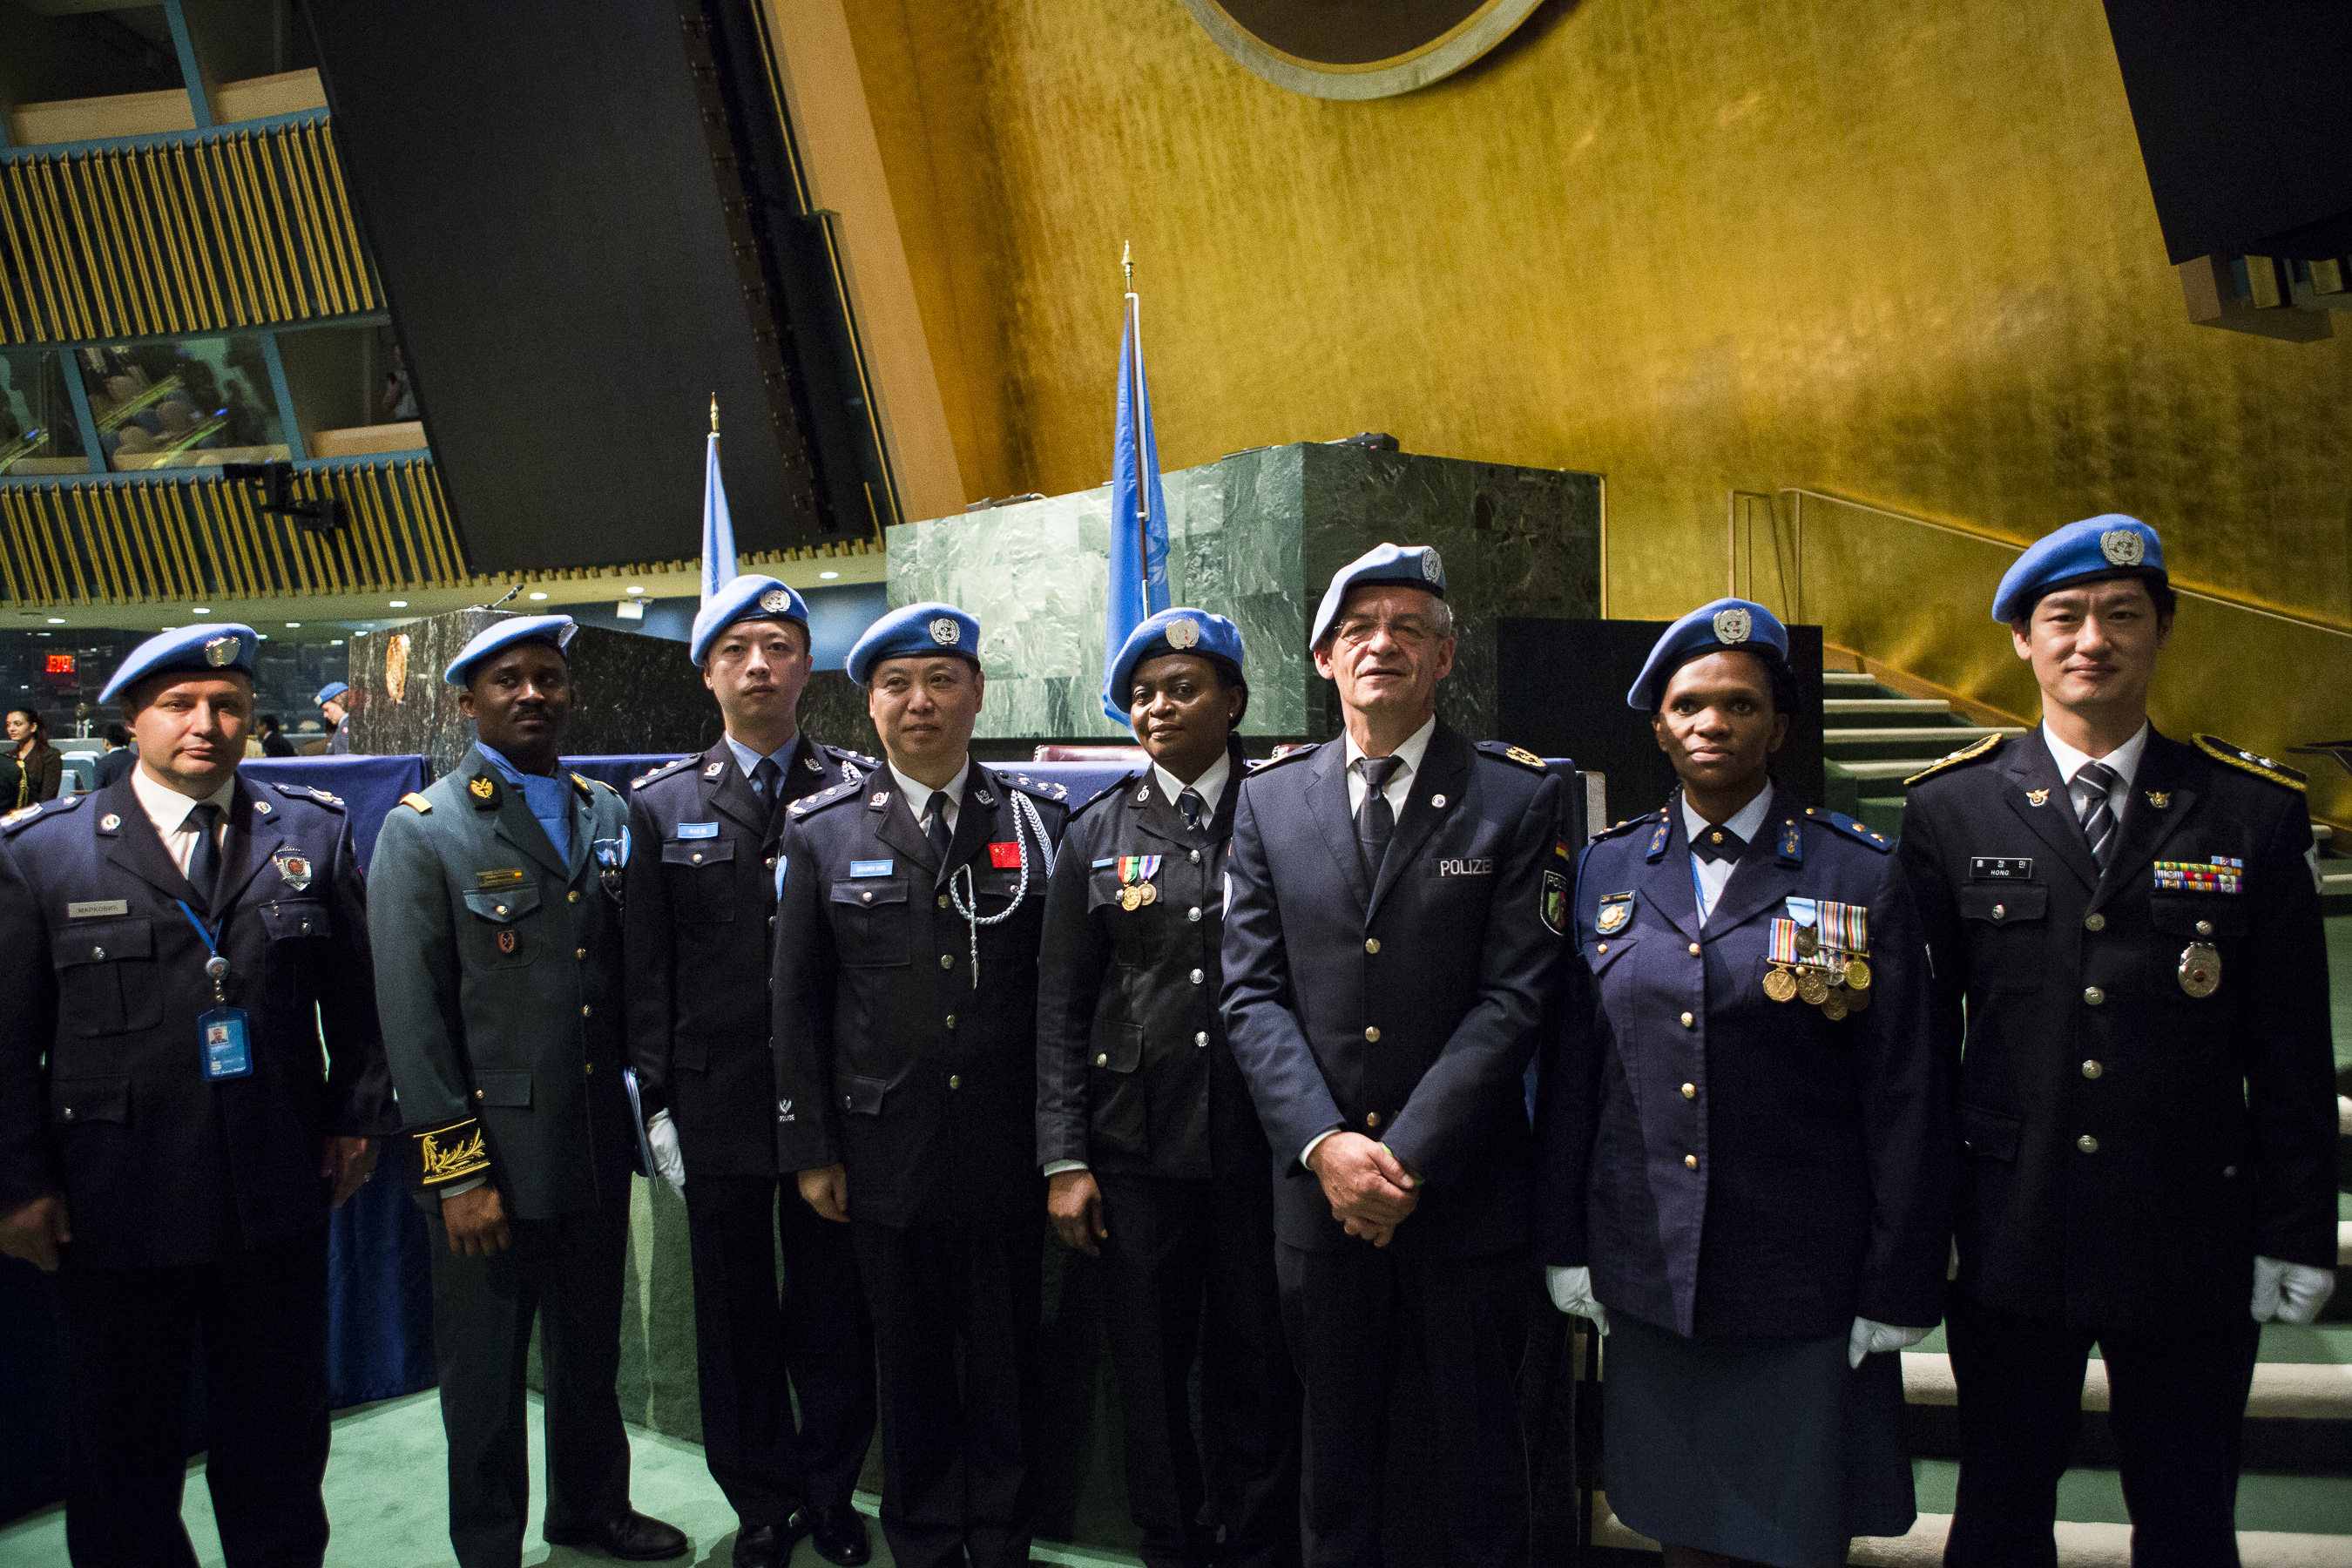 UN police officers at the margin of the United Nations headquarters medal parade in May 2016. UN Photo/Manuel Elias